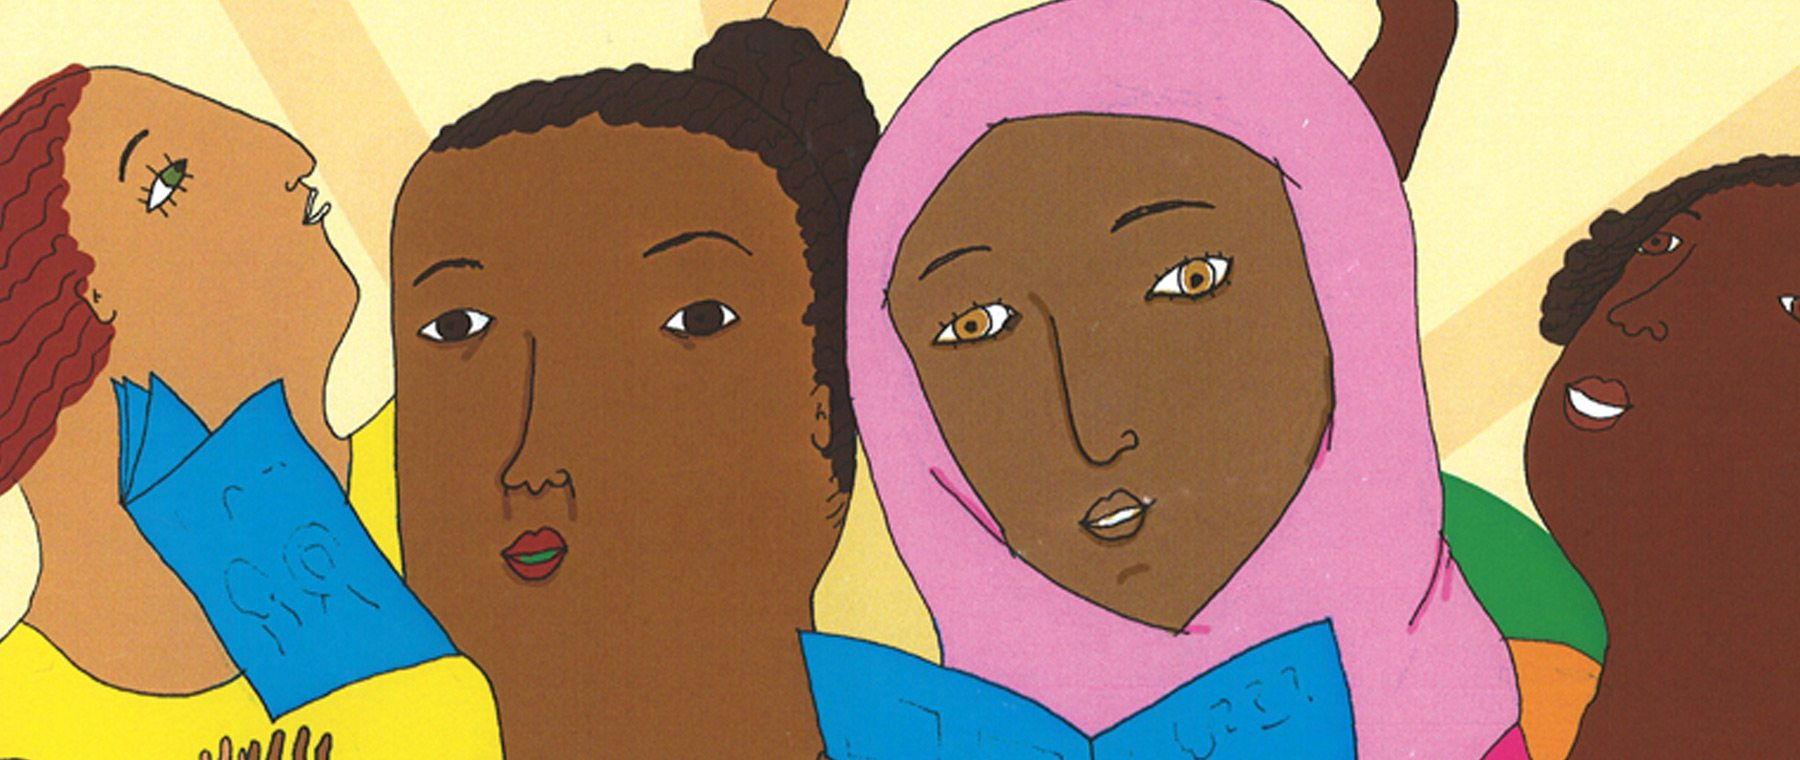 Immigrant women's abuse – their stories – illustrated in graphic novel